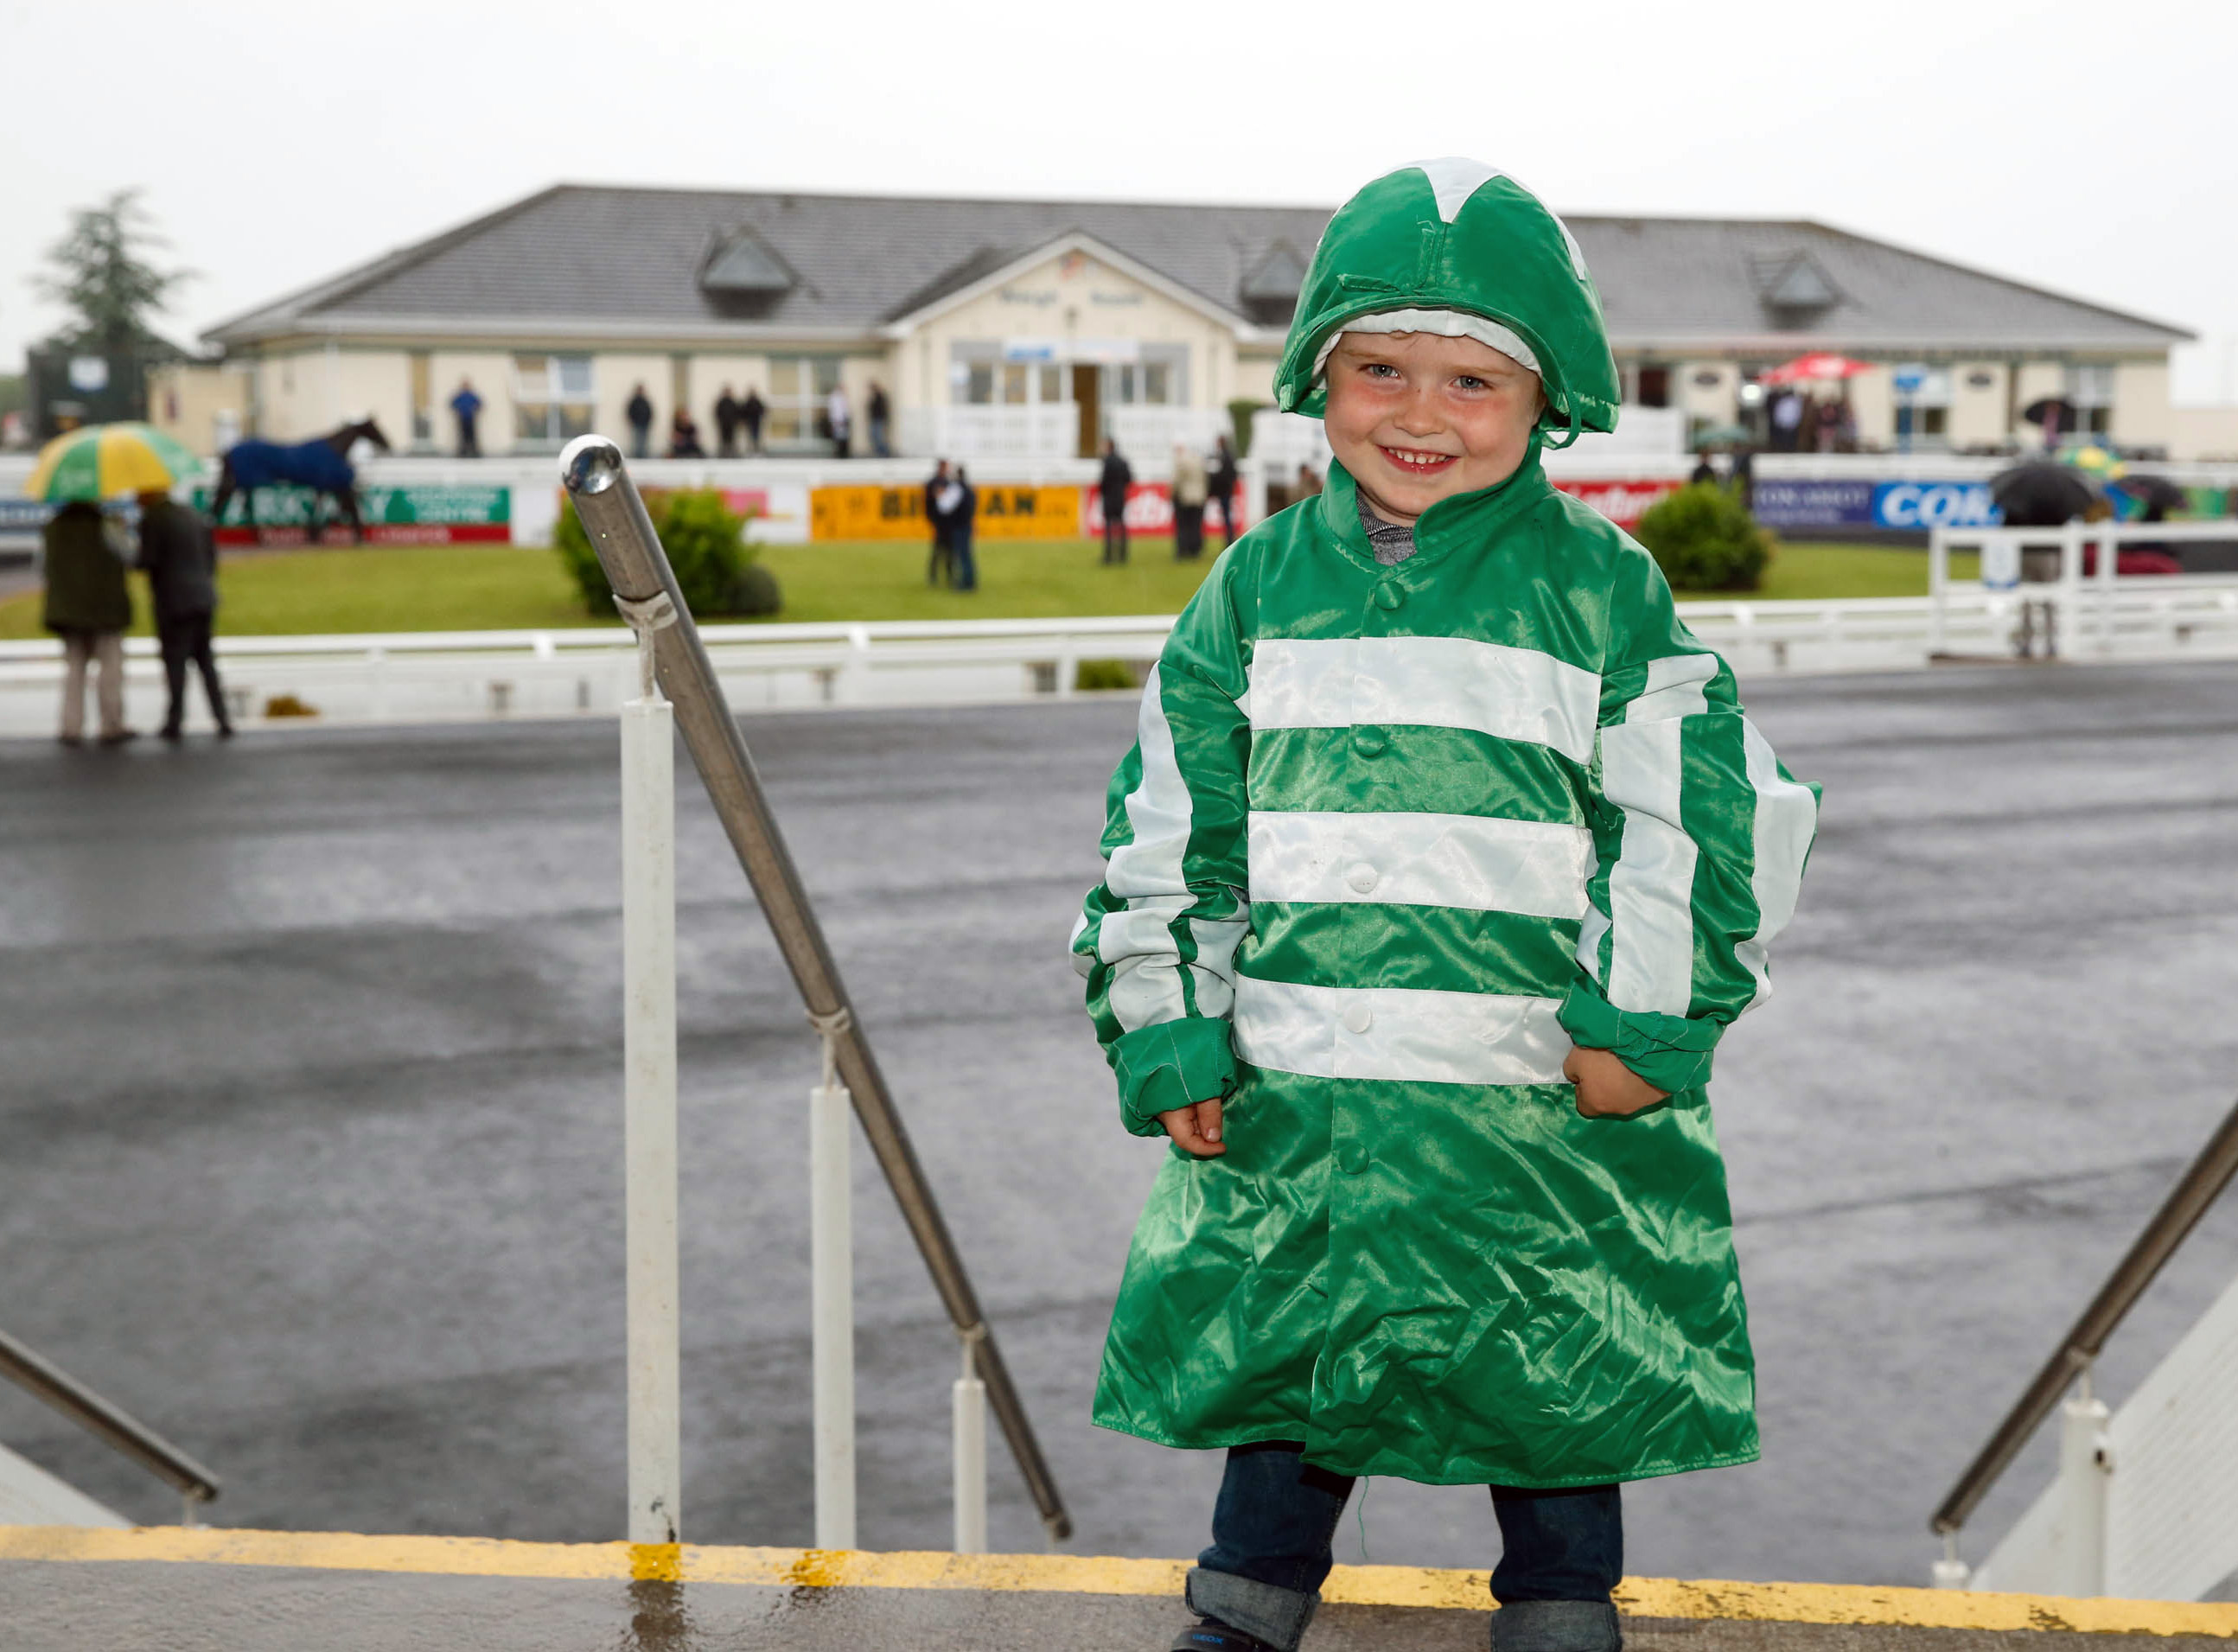 11-6-16 coral.ie Race Day at Limerick Racecourse.Jacj Costello aged 4 looking to a future as a jockey. Picture: Keith Wiseman